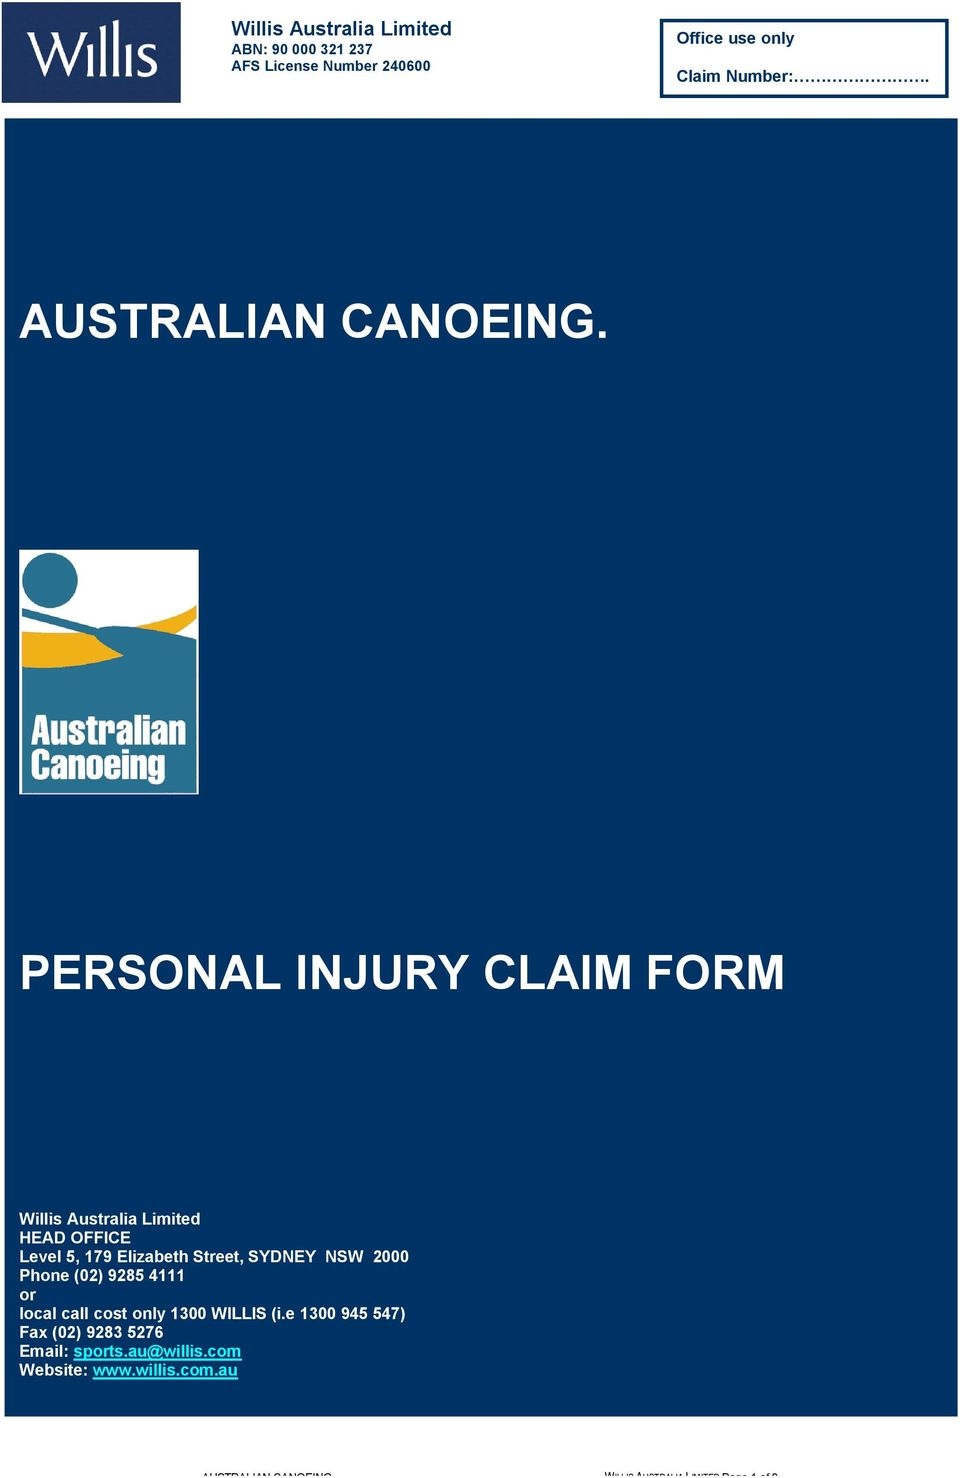 PERSONAL INJURY CLAIM FORM Willis Australia Limited HEAD OFFICE Level 5, 179 Elizabeth Street, SYDNEY NSW 2000